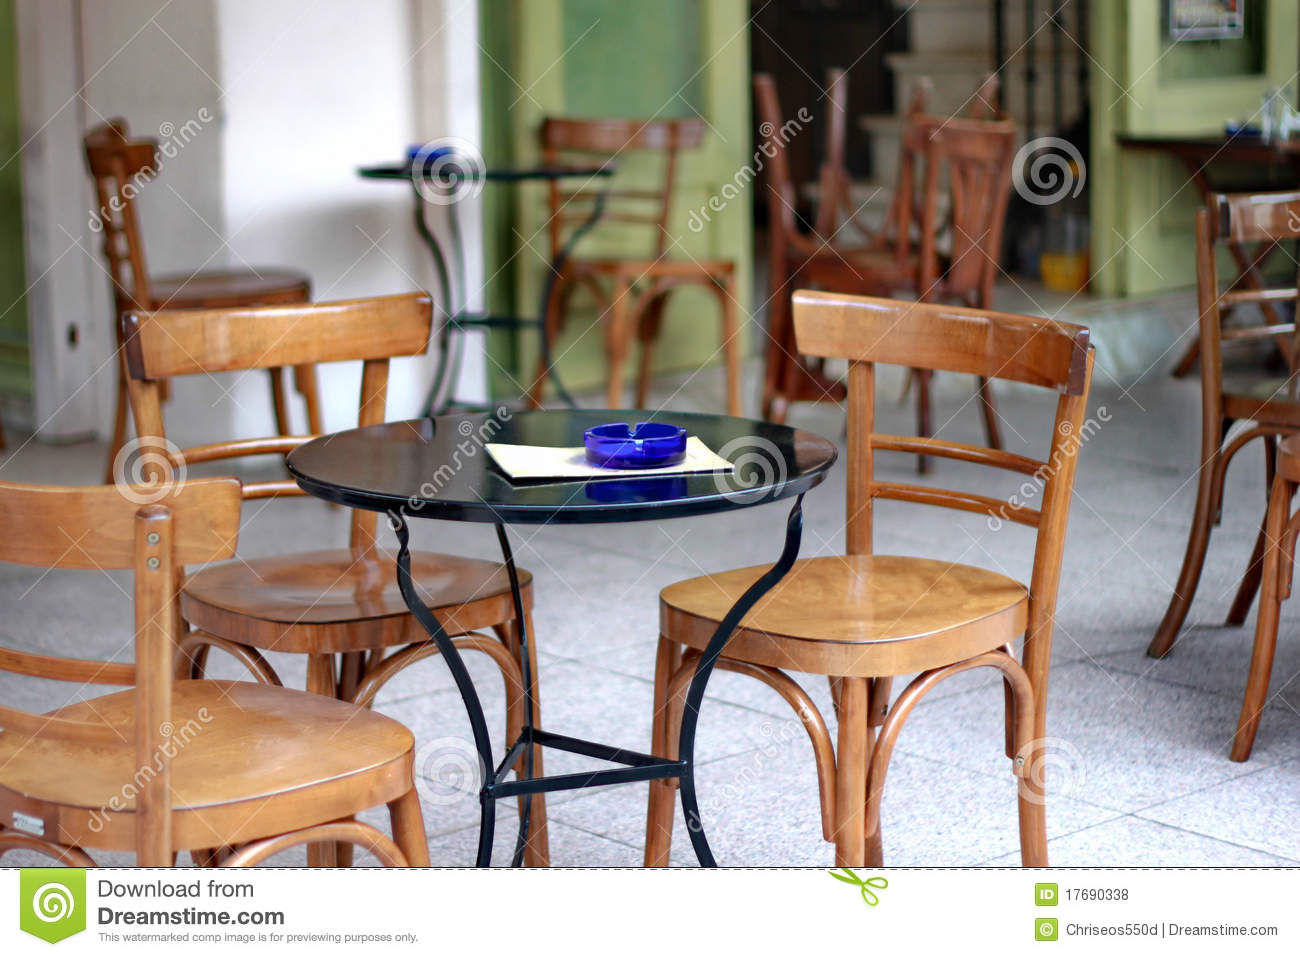 Outdoor cafe chairs - Cafe Chairs Empty Outdoor